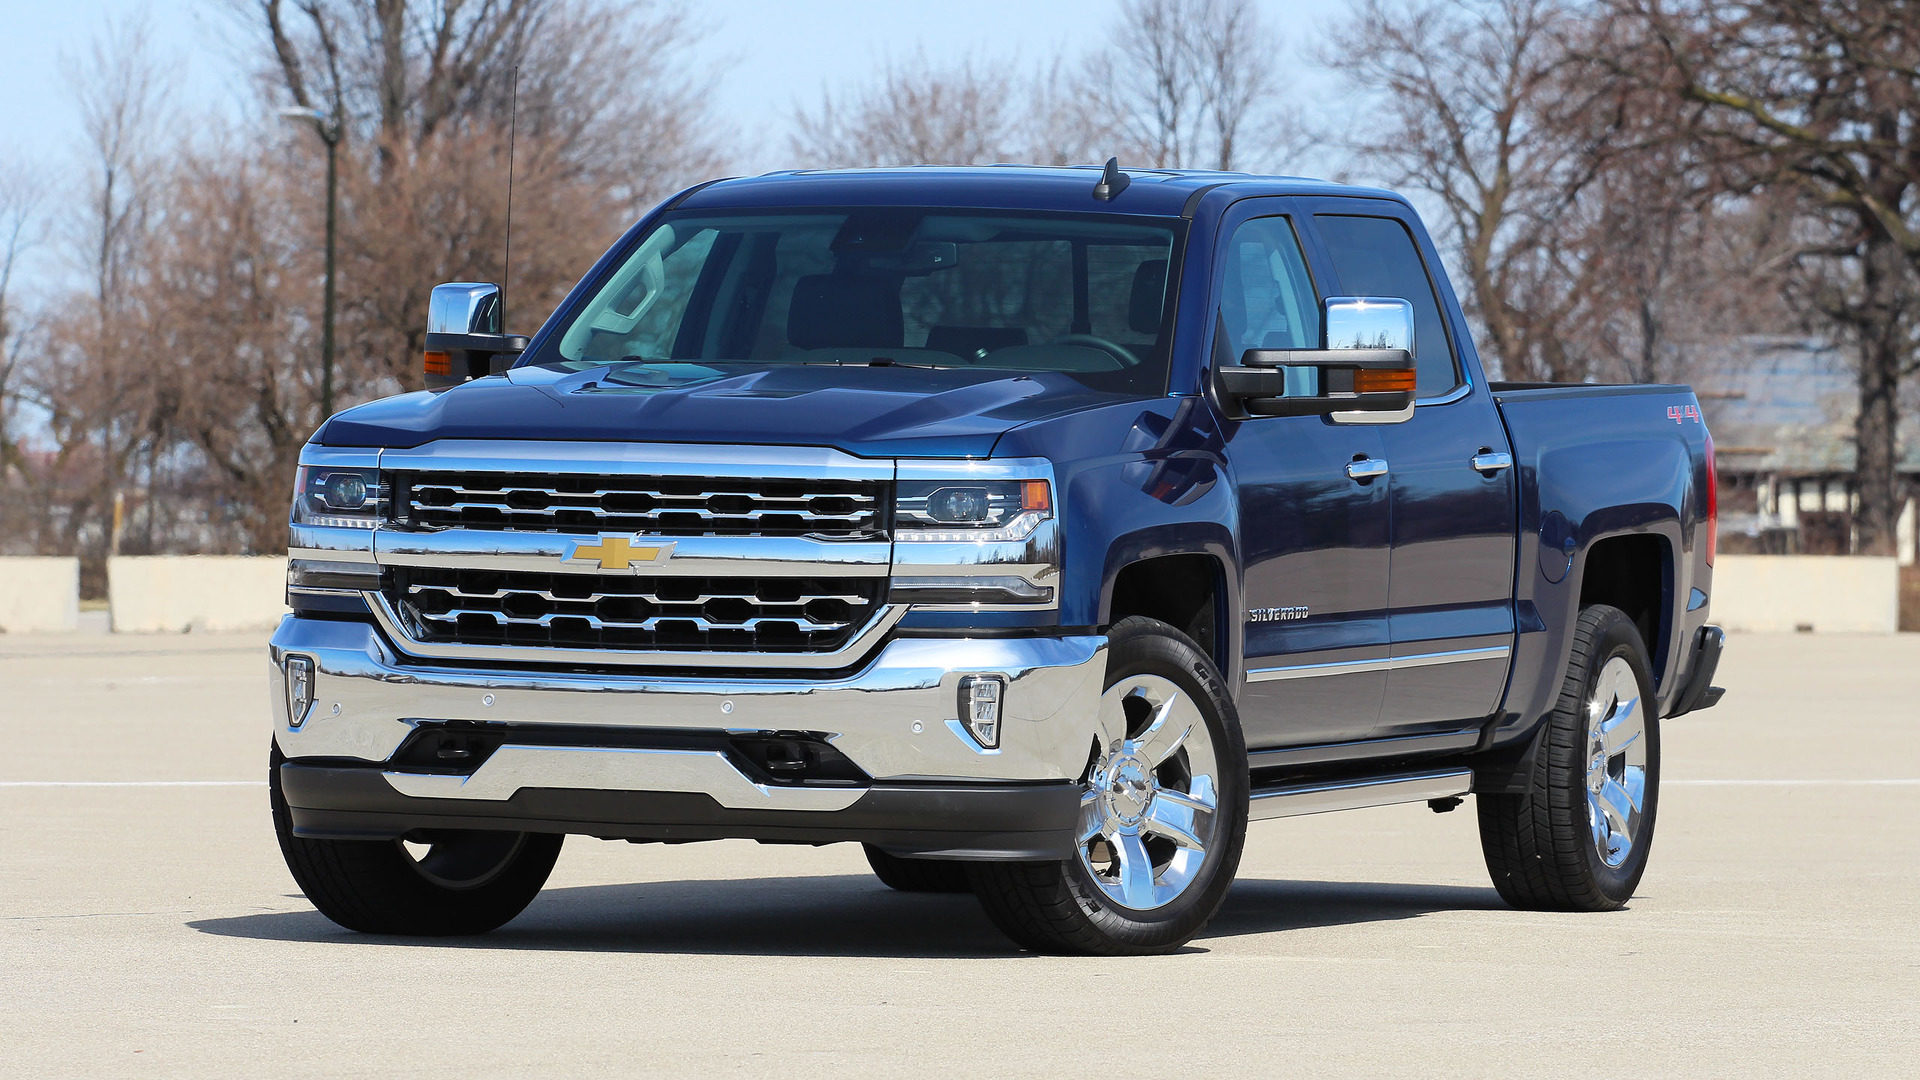 2017 Chevy Silverado 1500 Review A Main Event At The Gest In Town